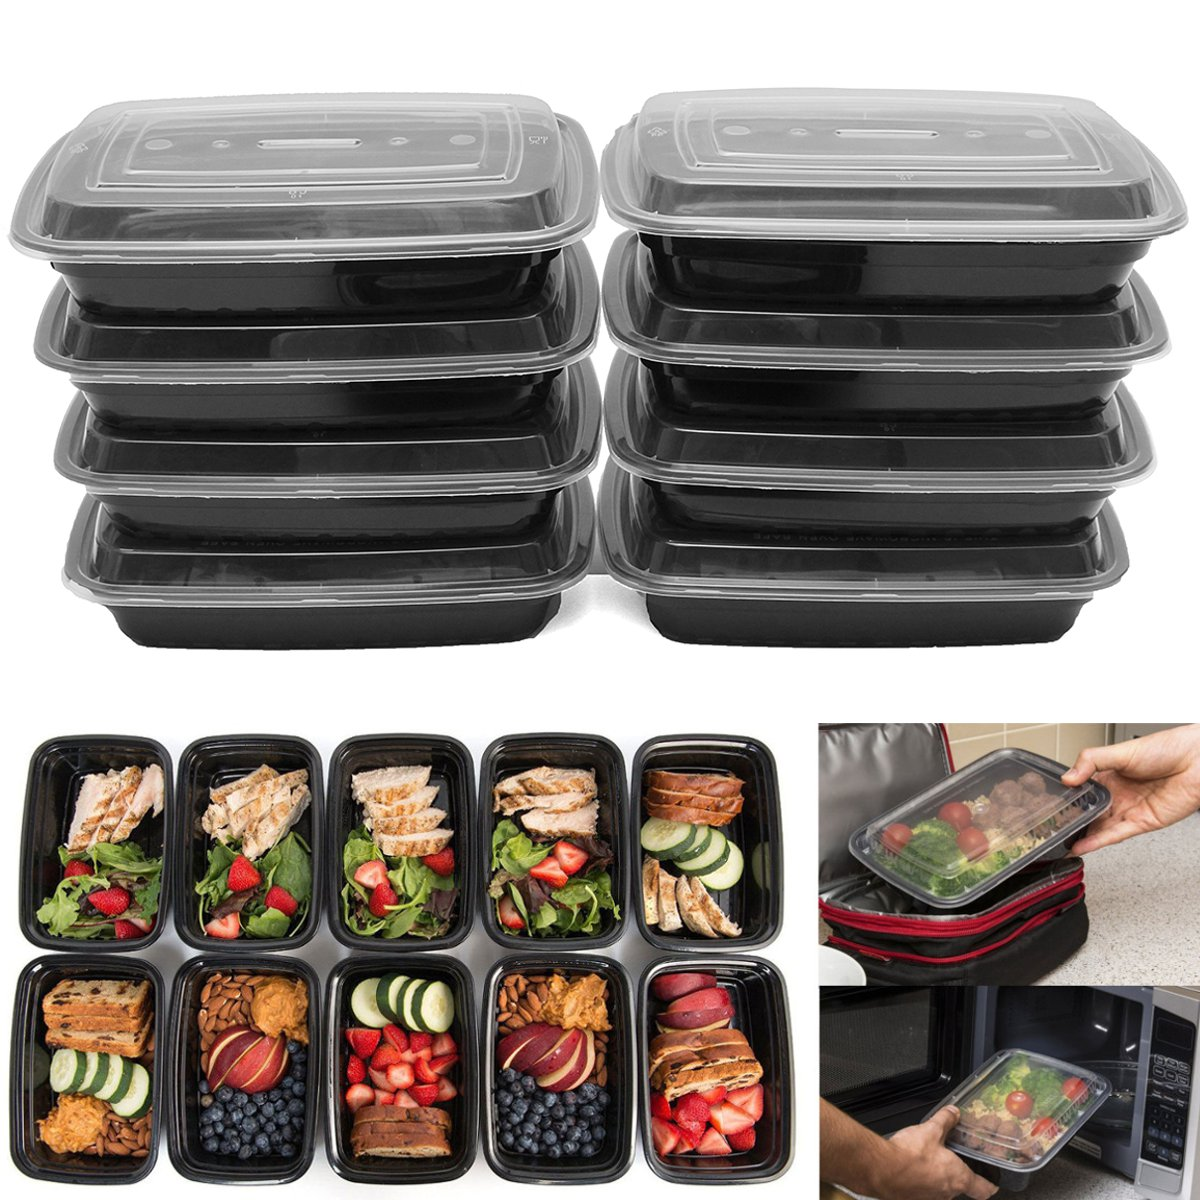 10PCS 700ML Square American Meal Box PP Food Container Lunch Box Bento Picnic Eco-friendly With Lid Microwavable Lunchboxes title=